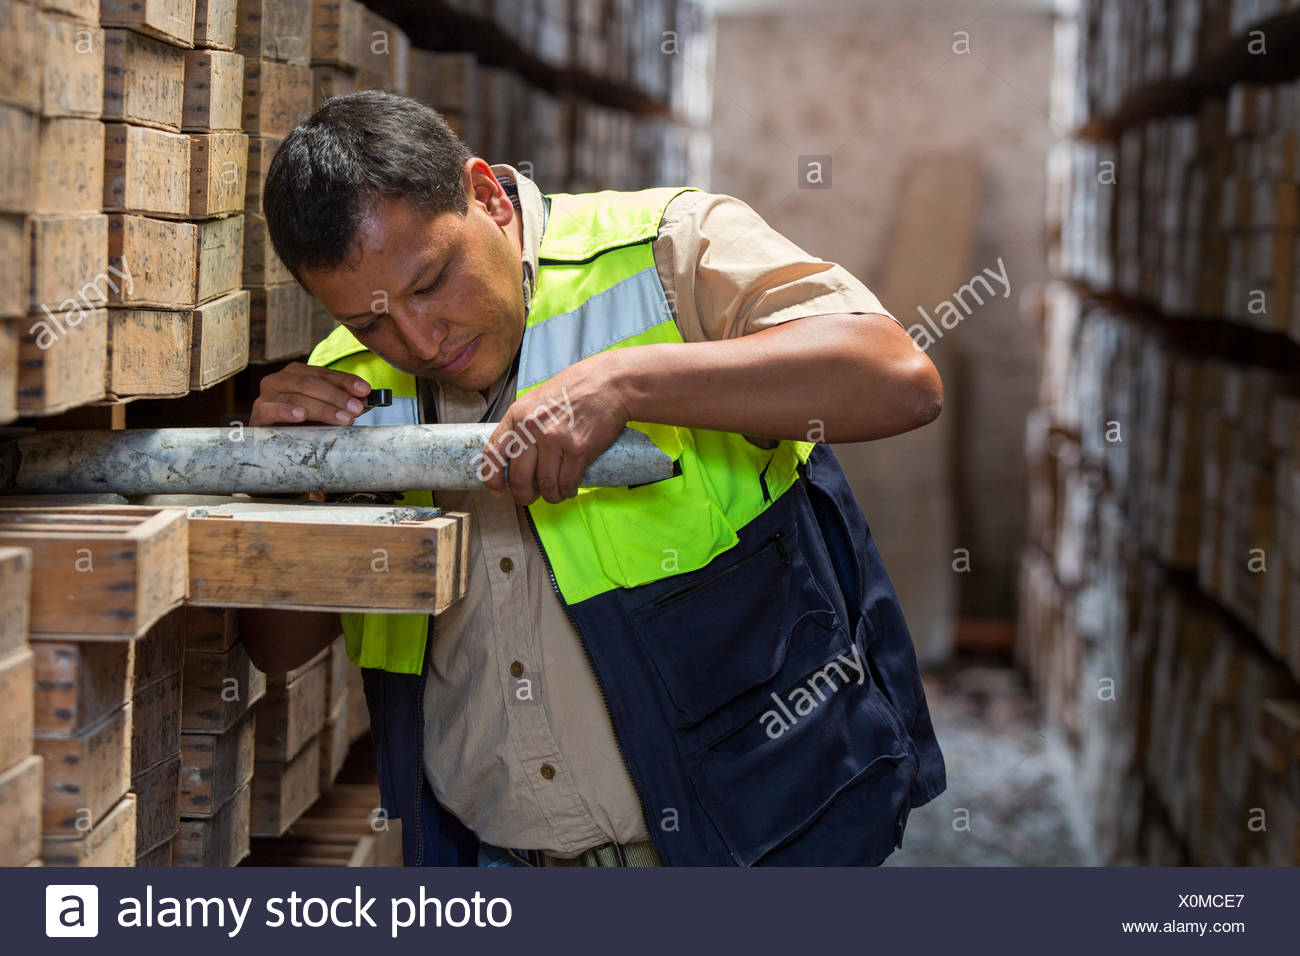 Geologist examines a core sample in his library. - Stock Image